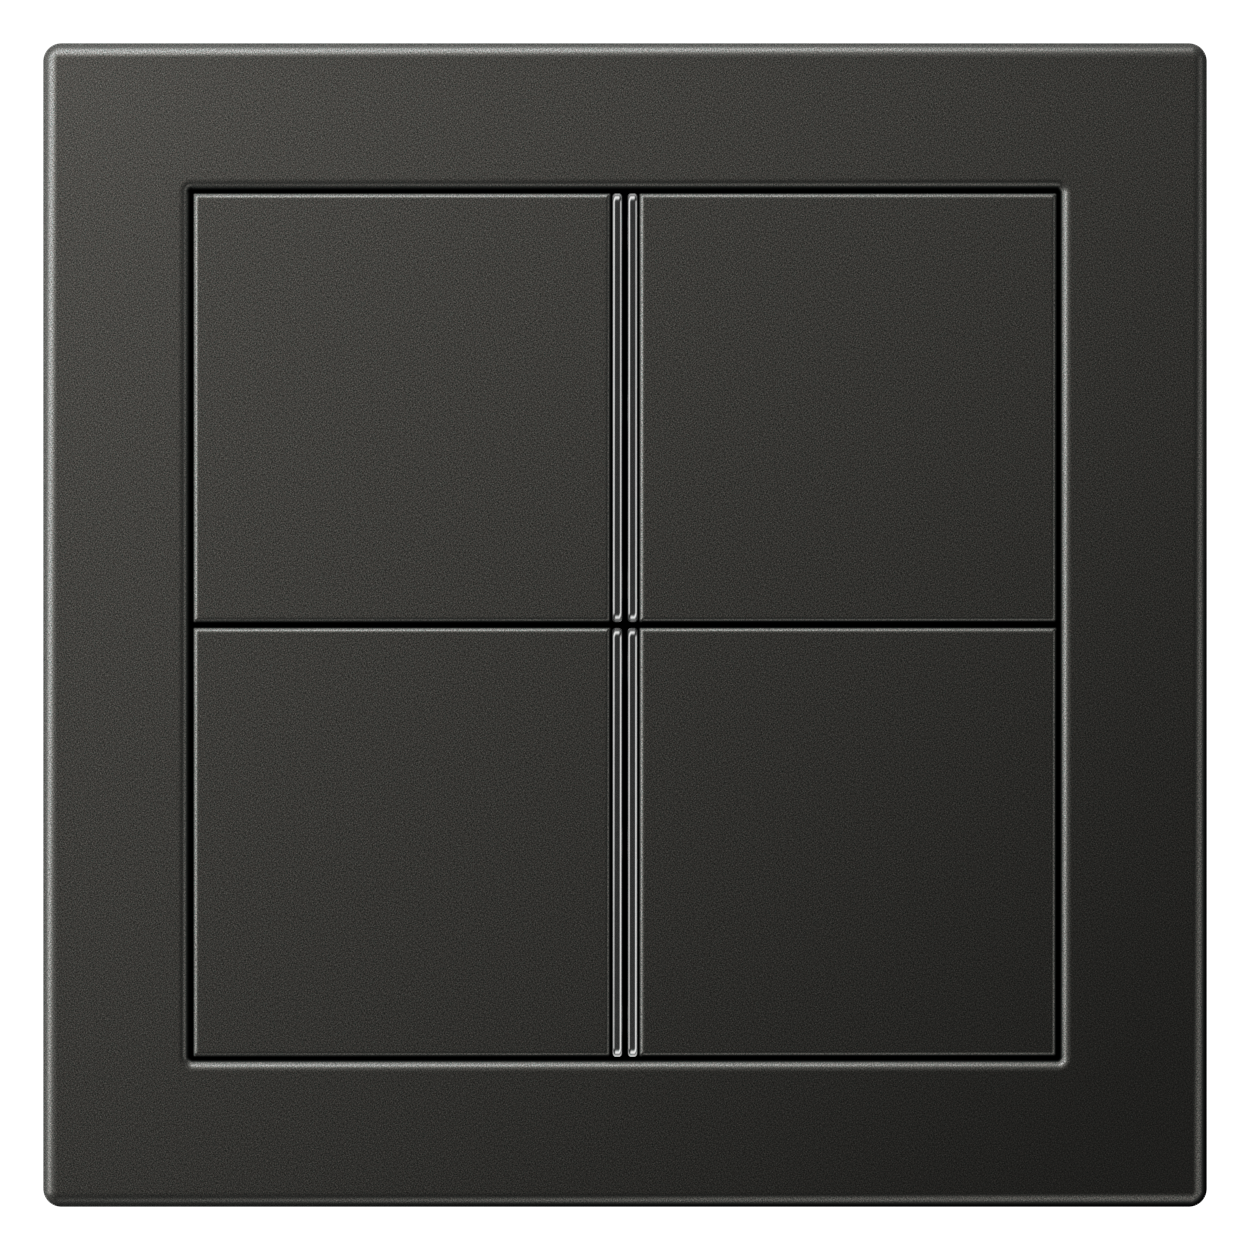 JUNG_Flat_Design_anthracite_4button